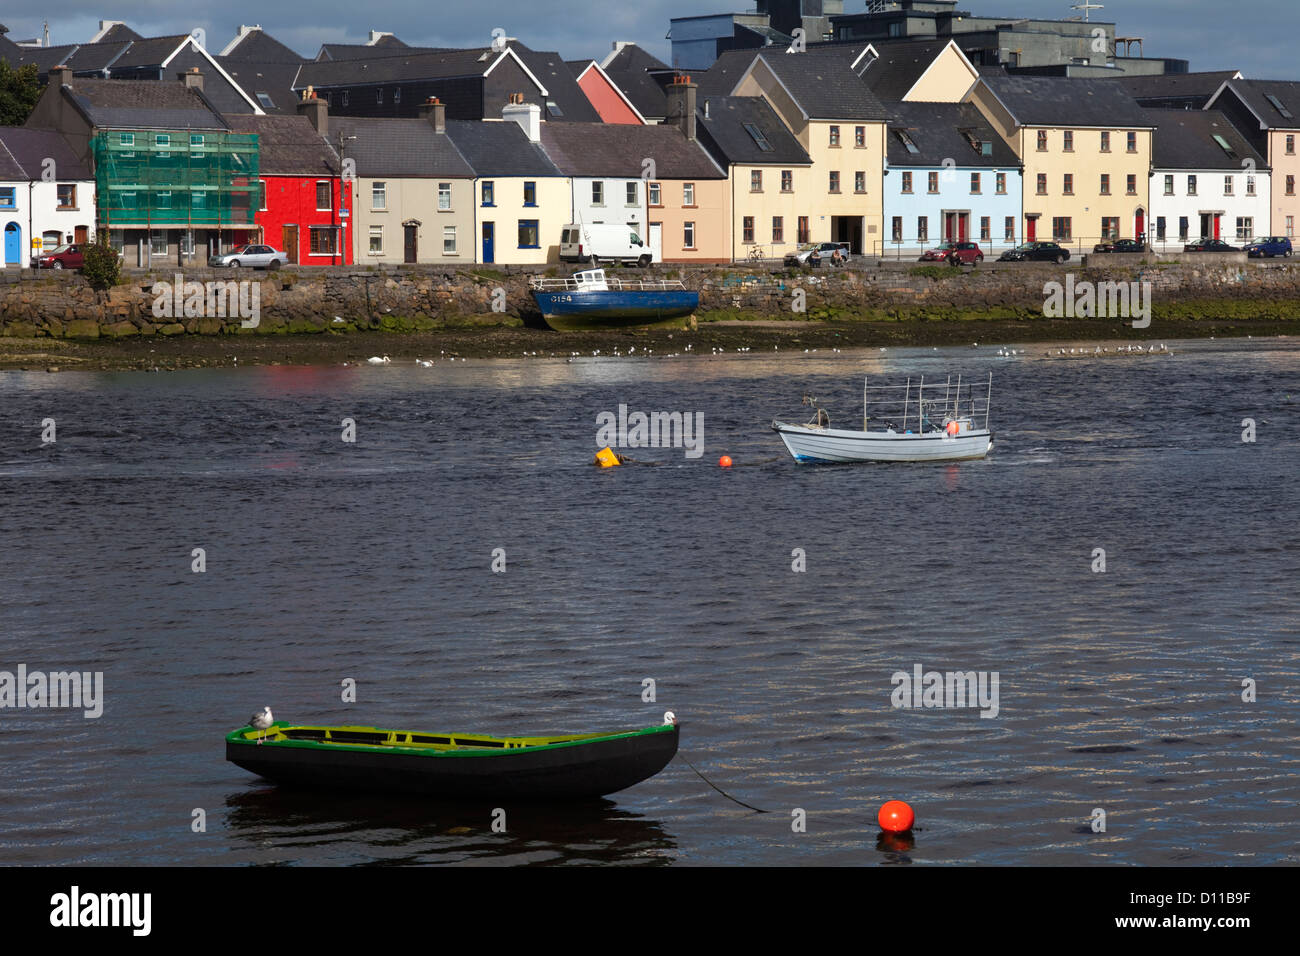 Currach in the River Corrib by the Long Walk, Galway City, Ireland - Stock Image